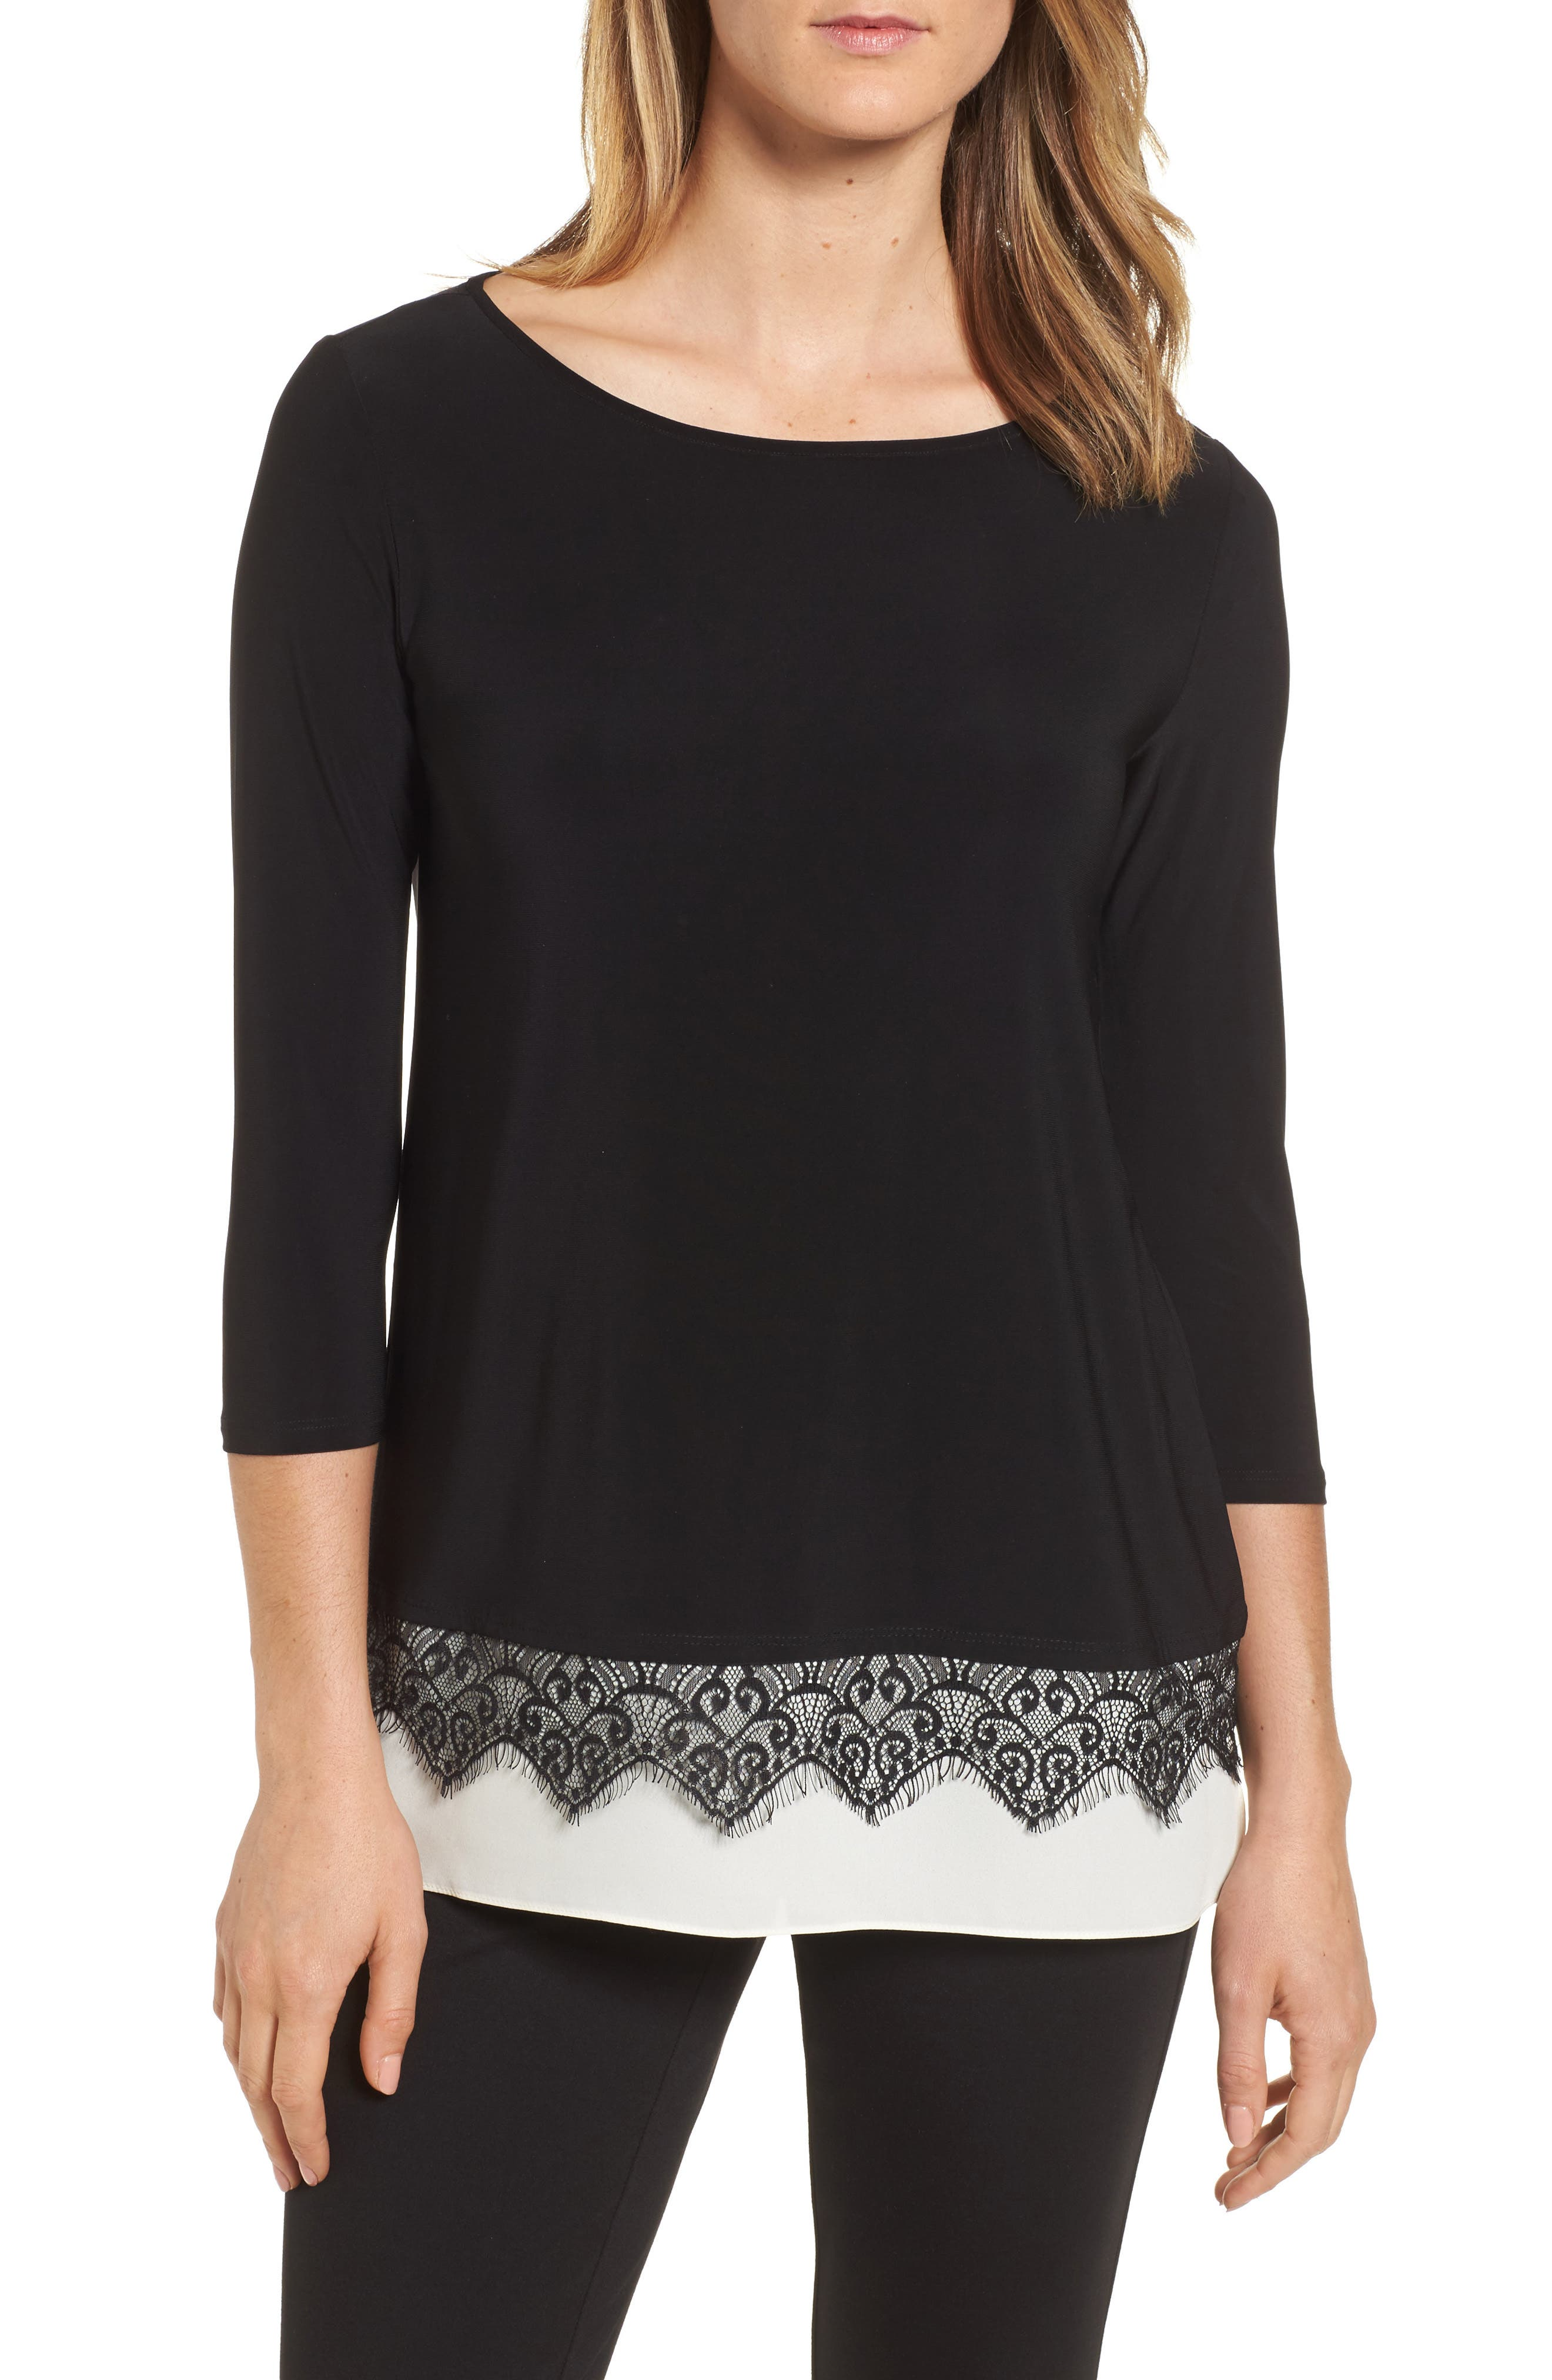 Alternate Image 1 Selected - Chaus Lace Trim Knit Top